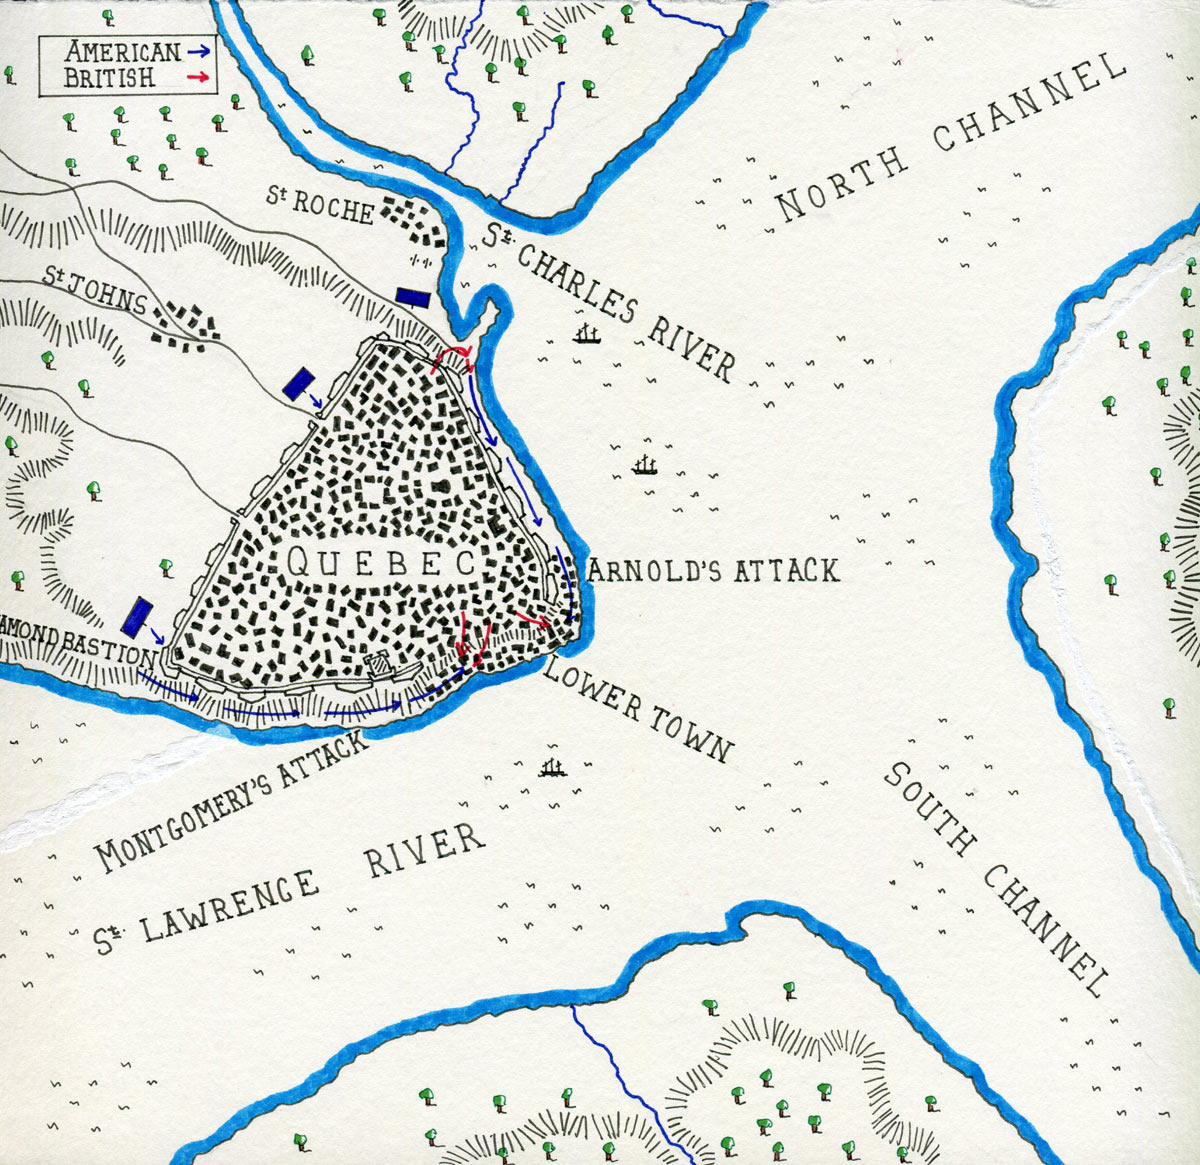 Map of the Battle of Quebec on 31st December 1775 in the American Revolutionary War: map by John Fawkes